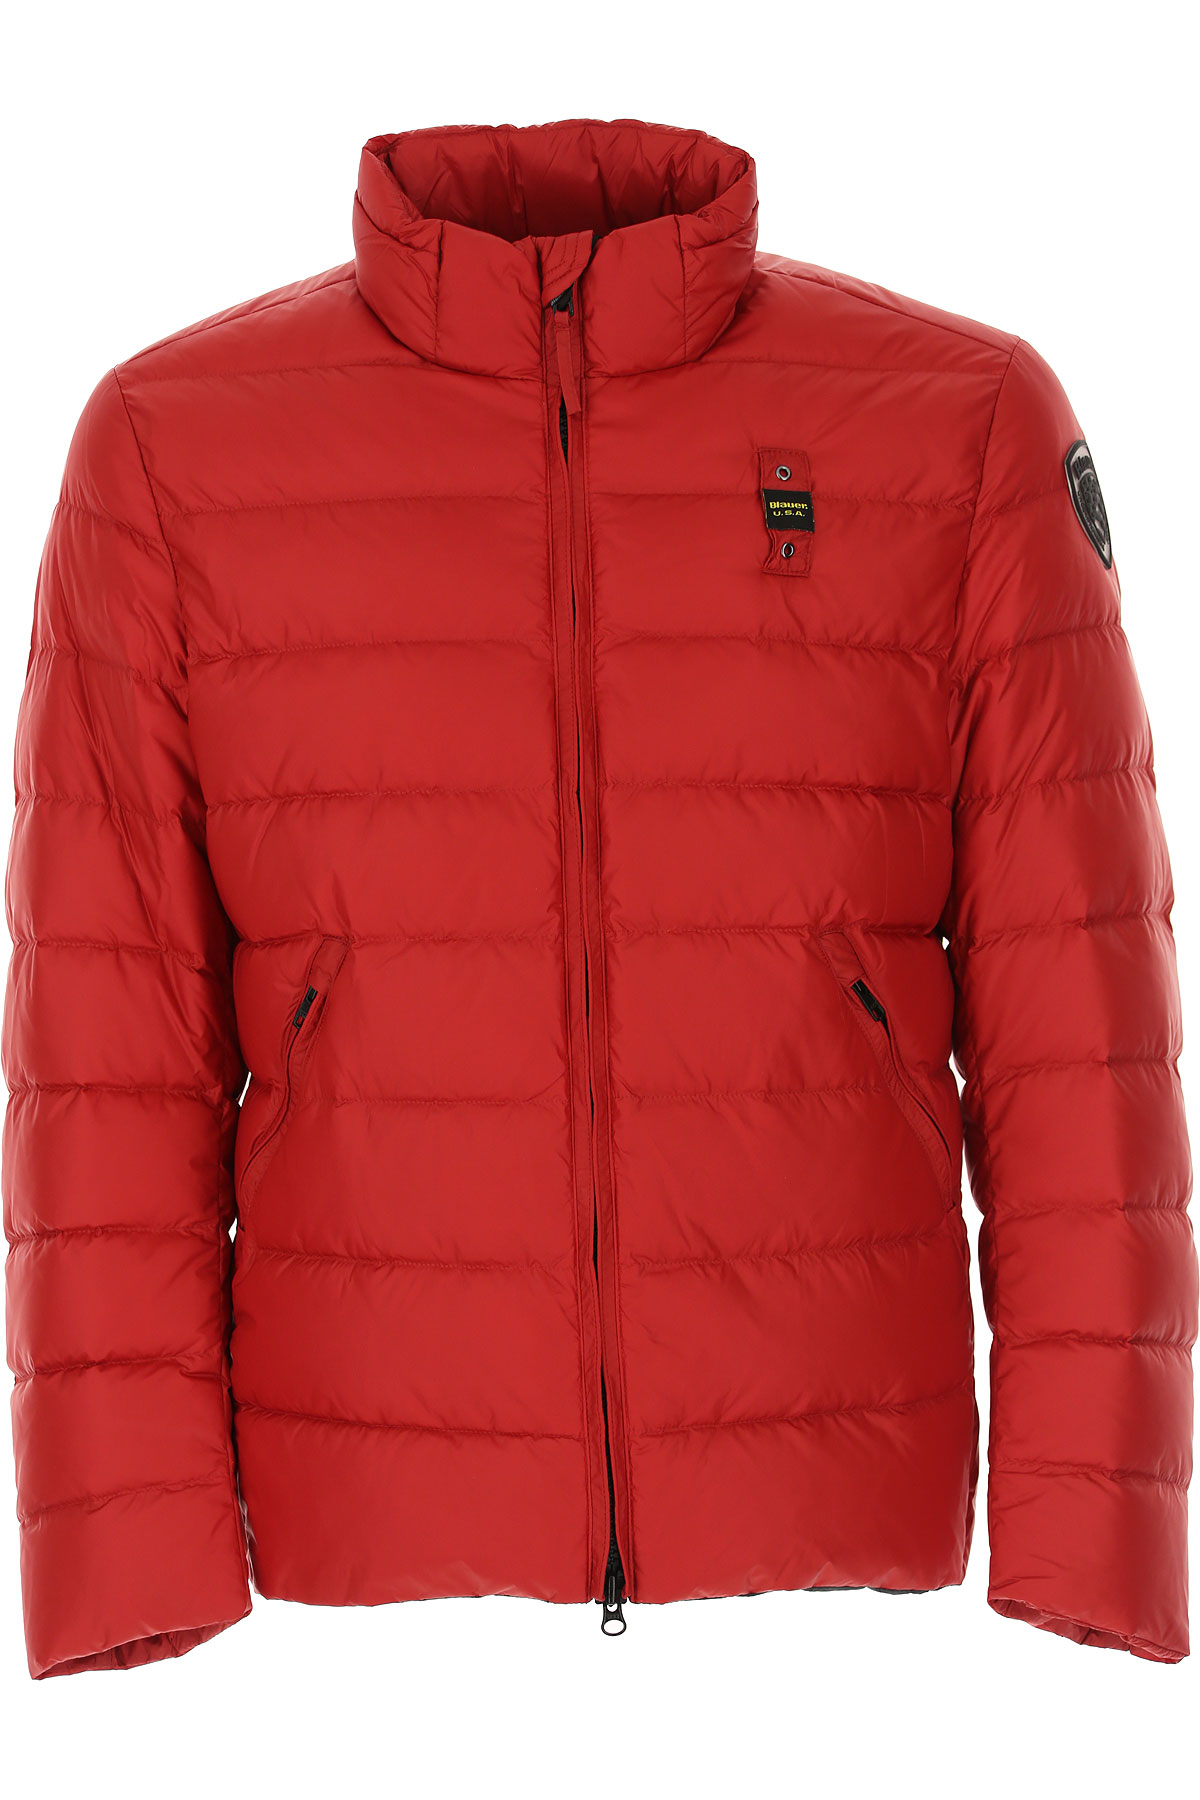 Blauer Down Jacket for Men, Puffer Ski Jacket On Sale, Flame Red, polyester, 2019, M XL